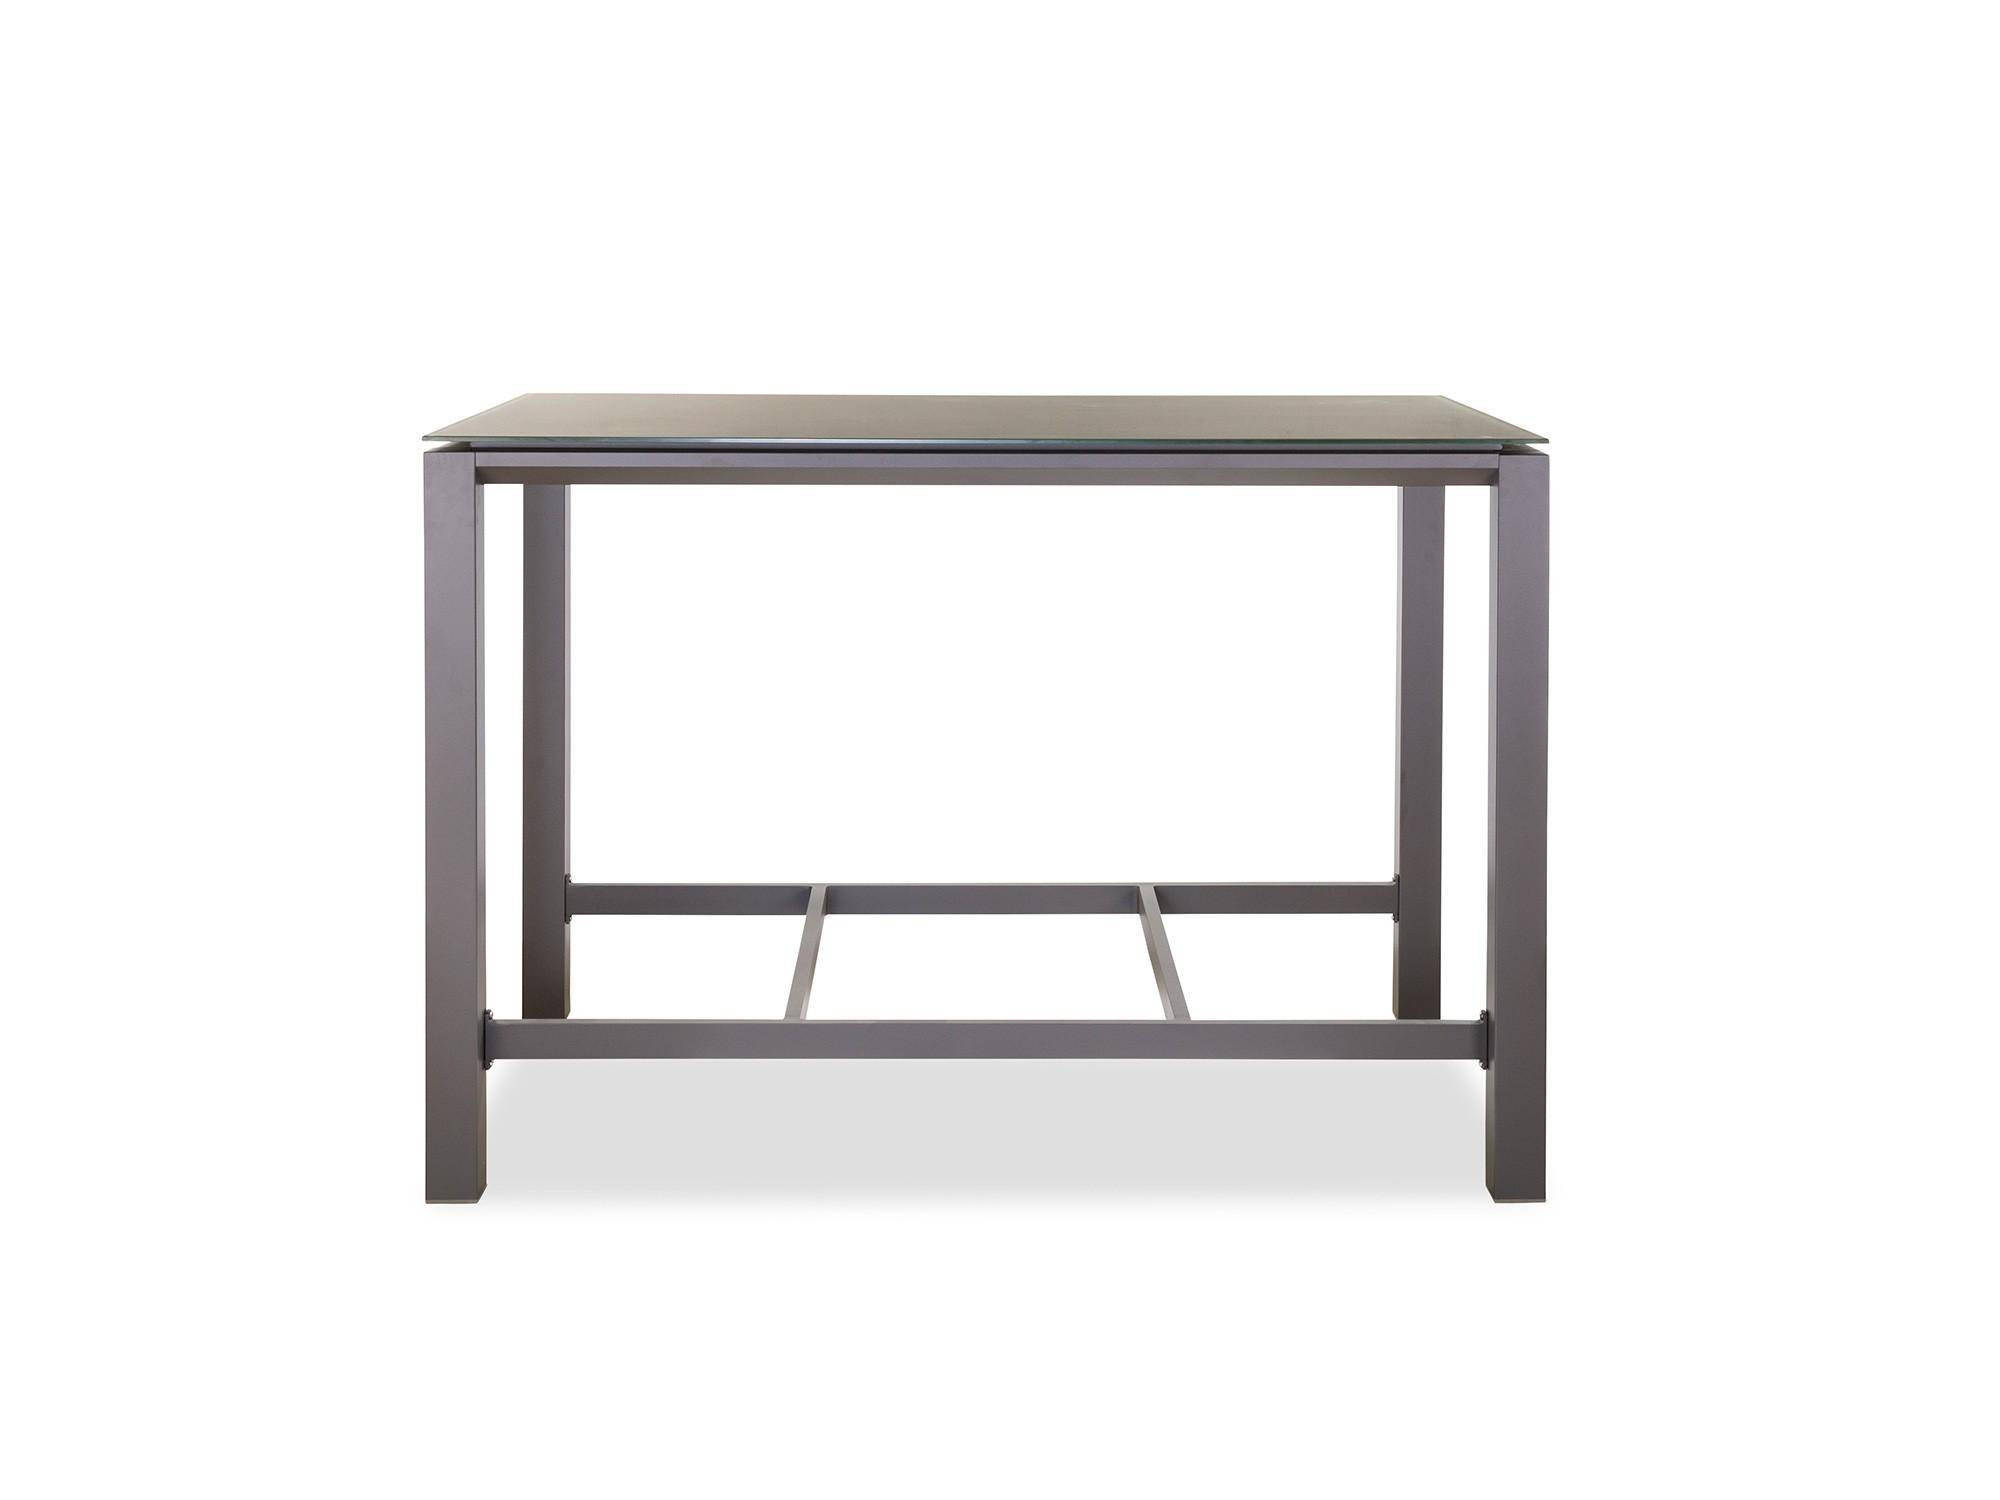 Outdoor Bar Table W Tempered Glass Top, Outdoor Glass Top Bar Table